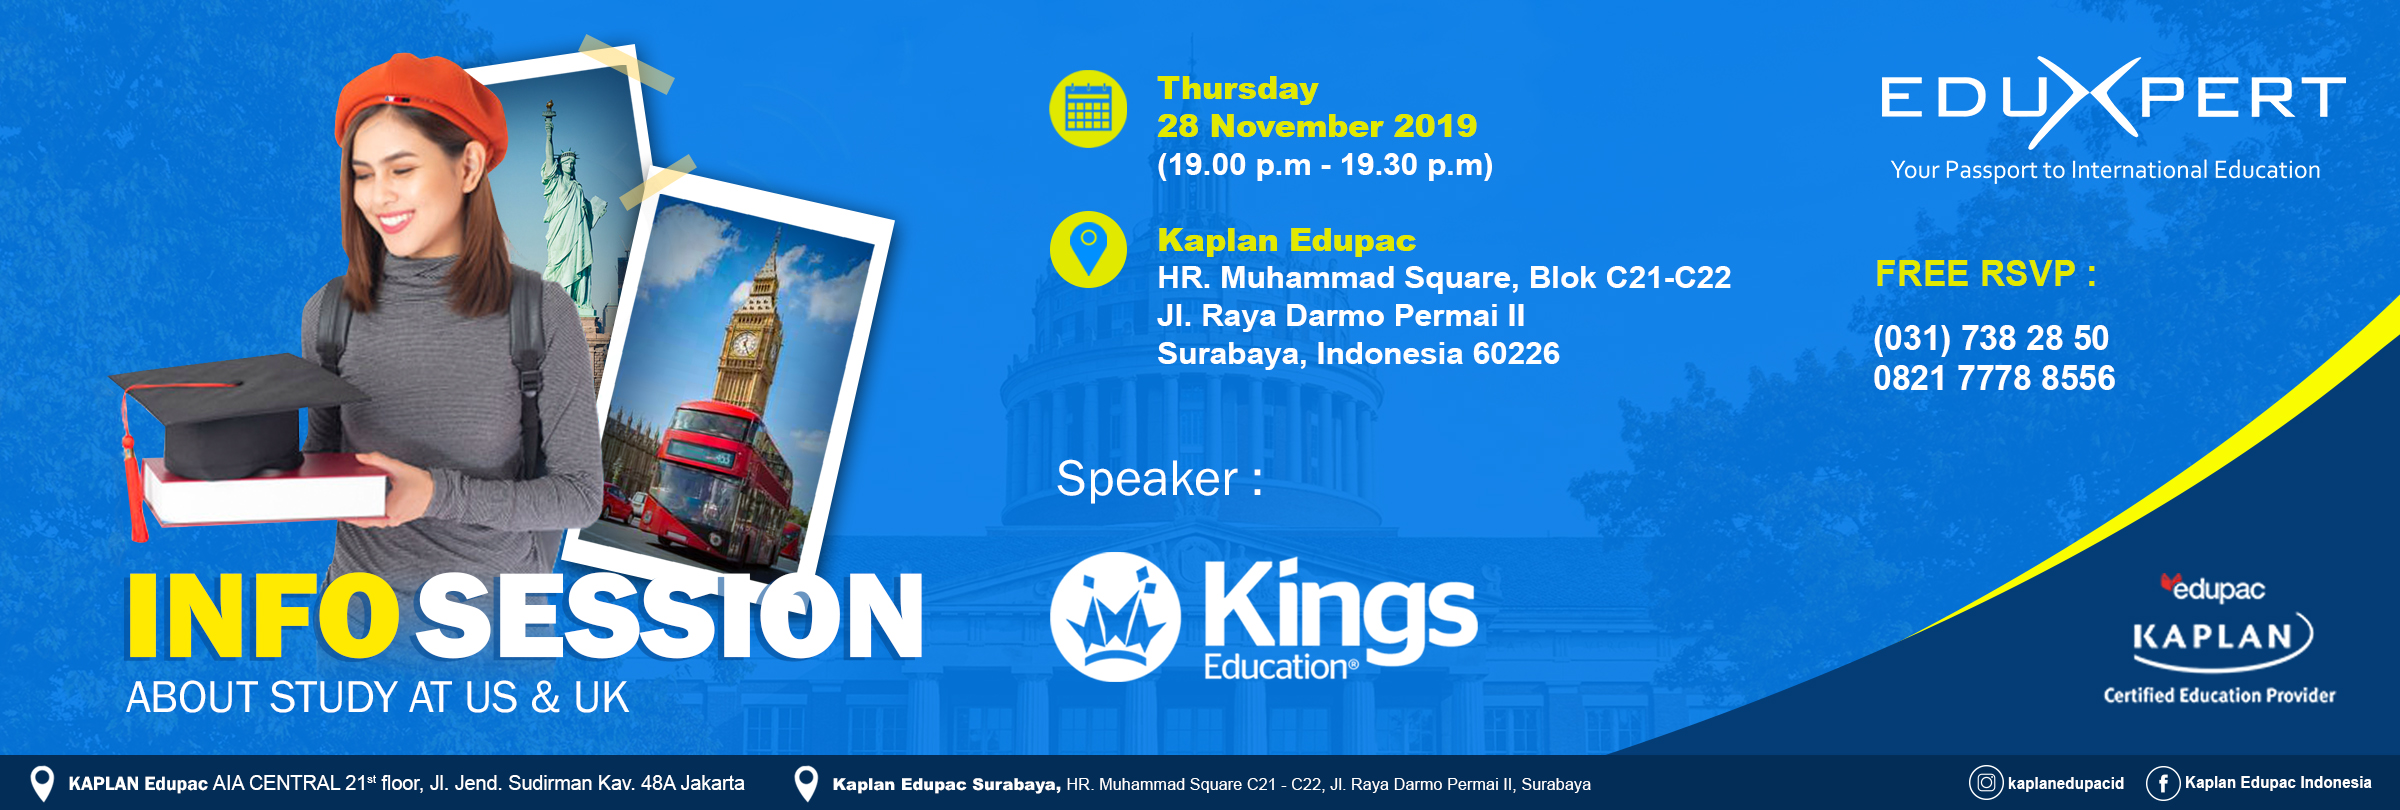 Kings Education : Info Session about study at US & UK